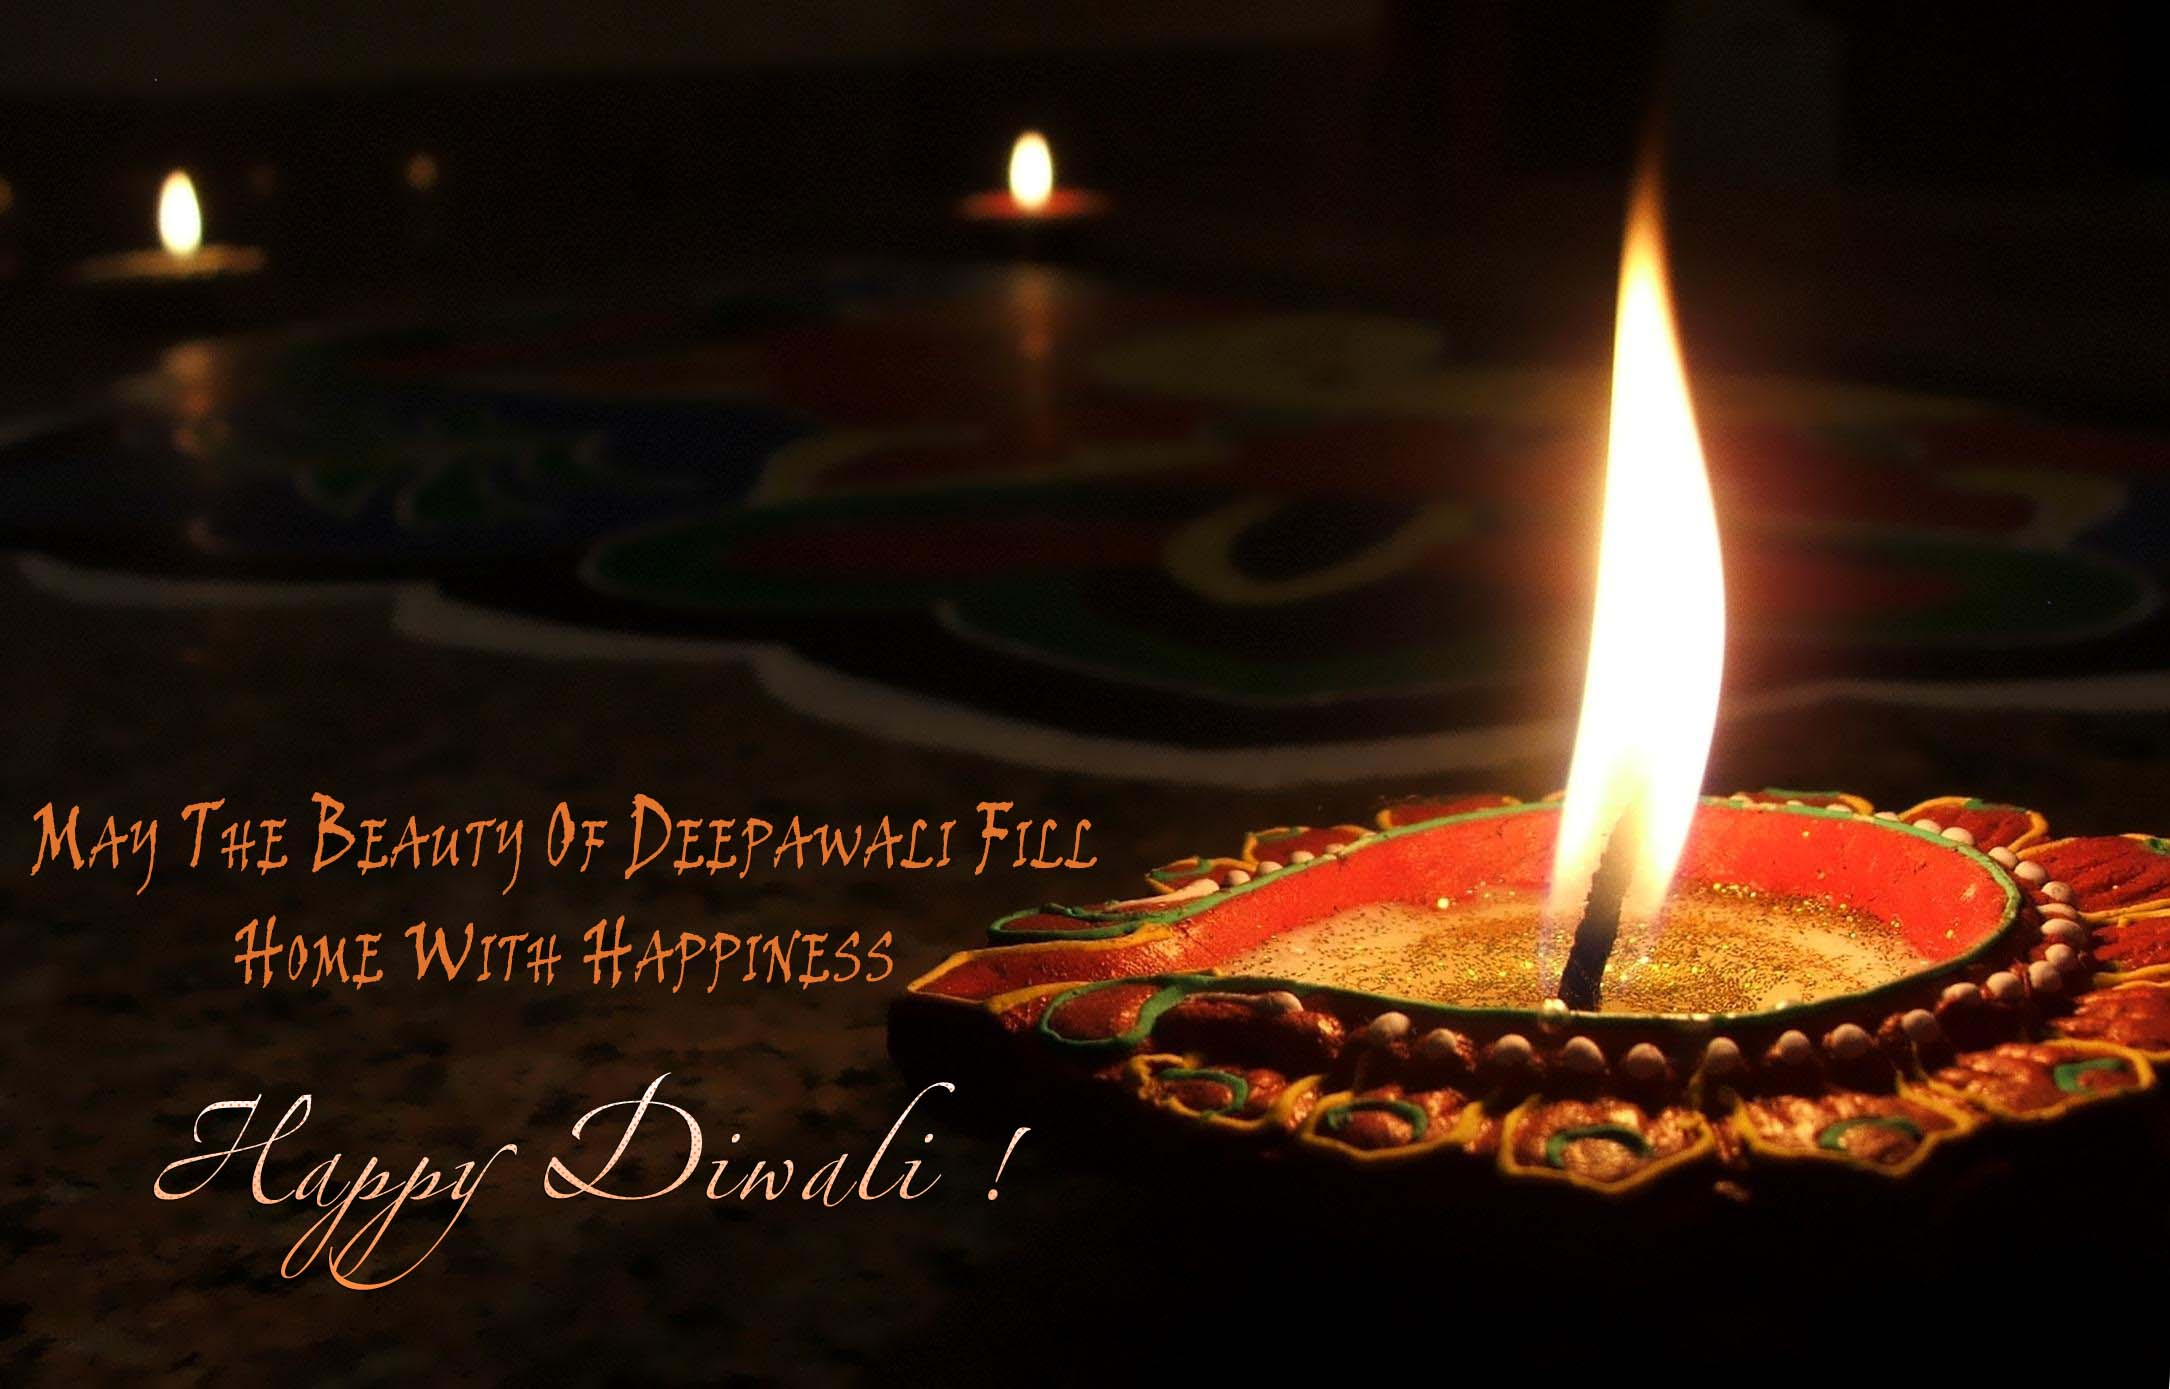 Awesome happy diwali greetings 10 beautiful happy day cards happy diwali wallpaper greetings 3 kristyandbryce Images